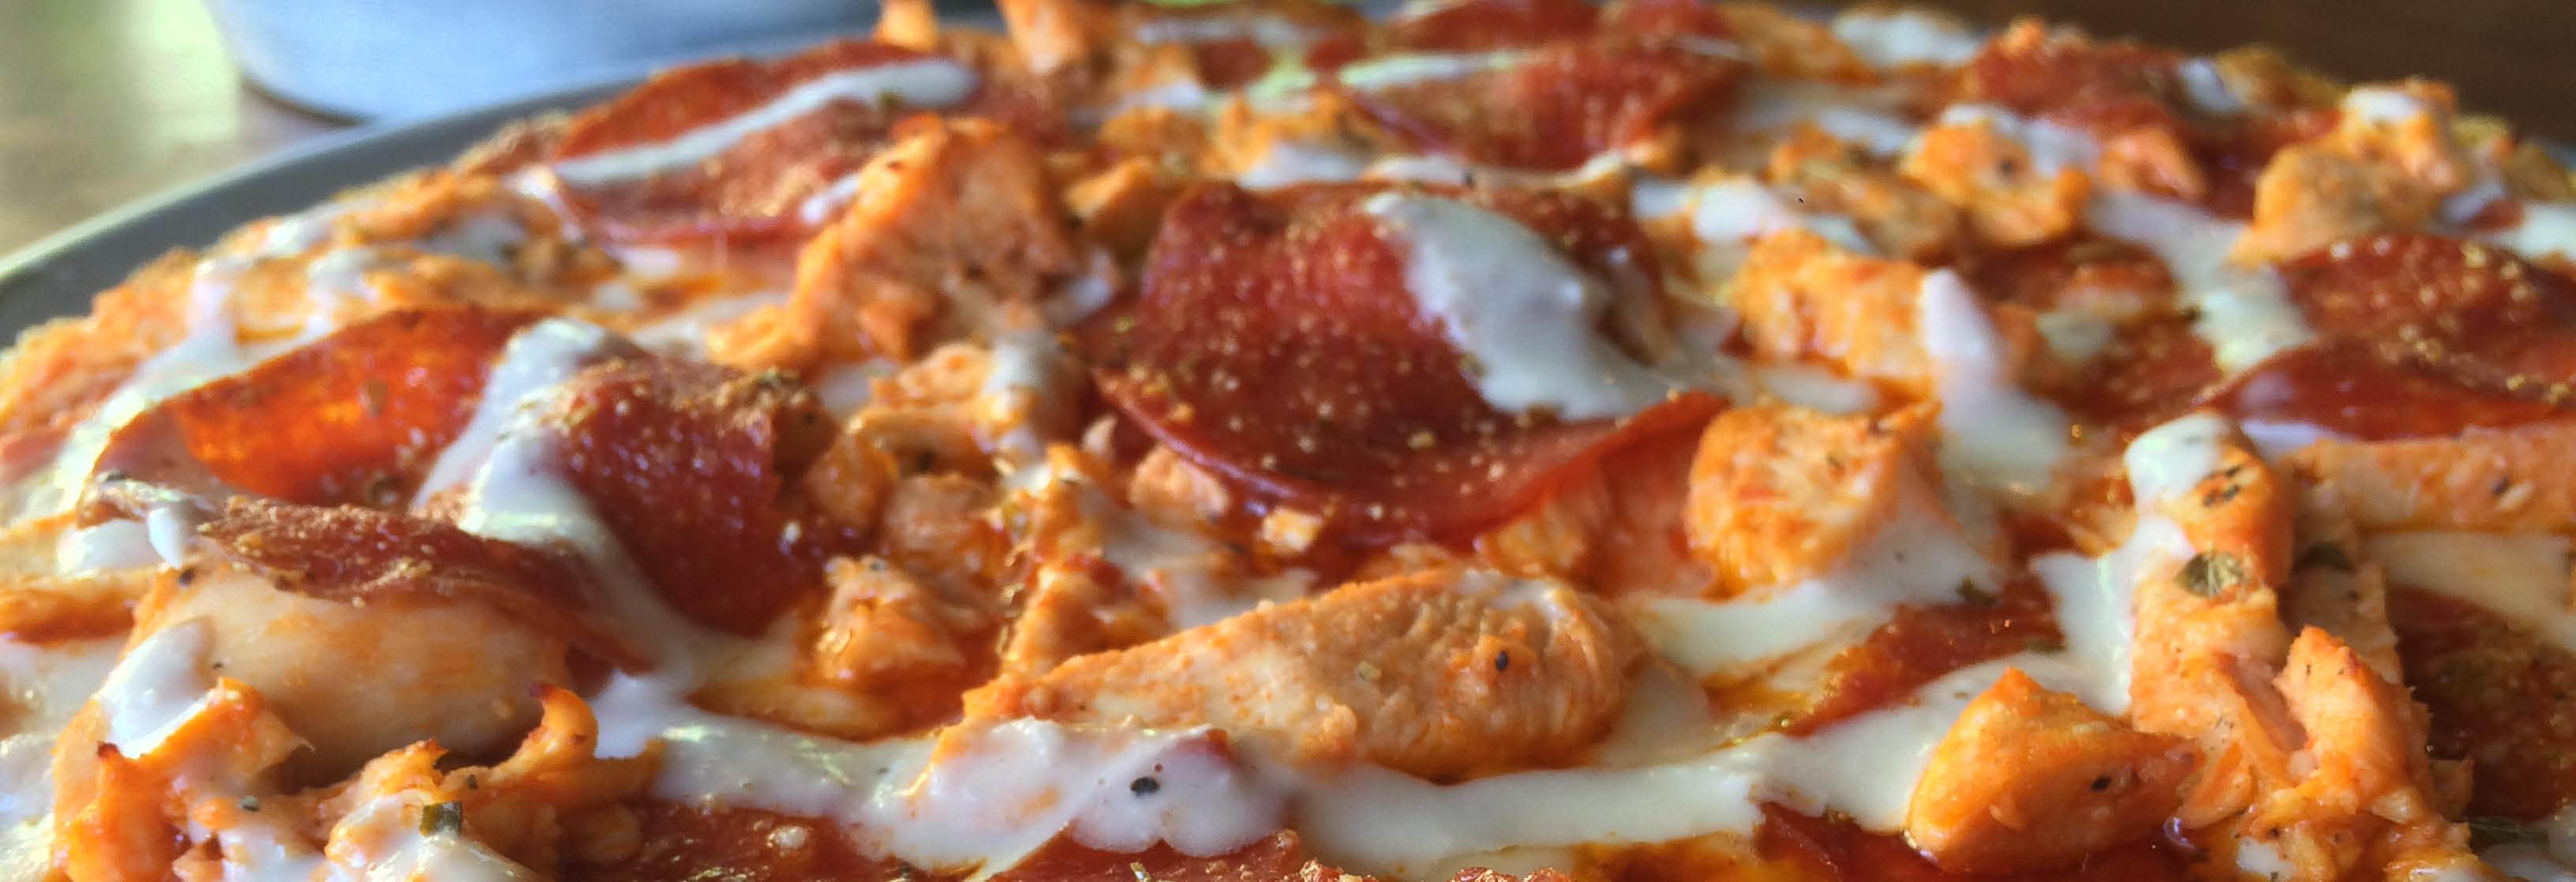 Pizzaville discount coupons